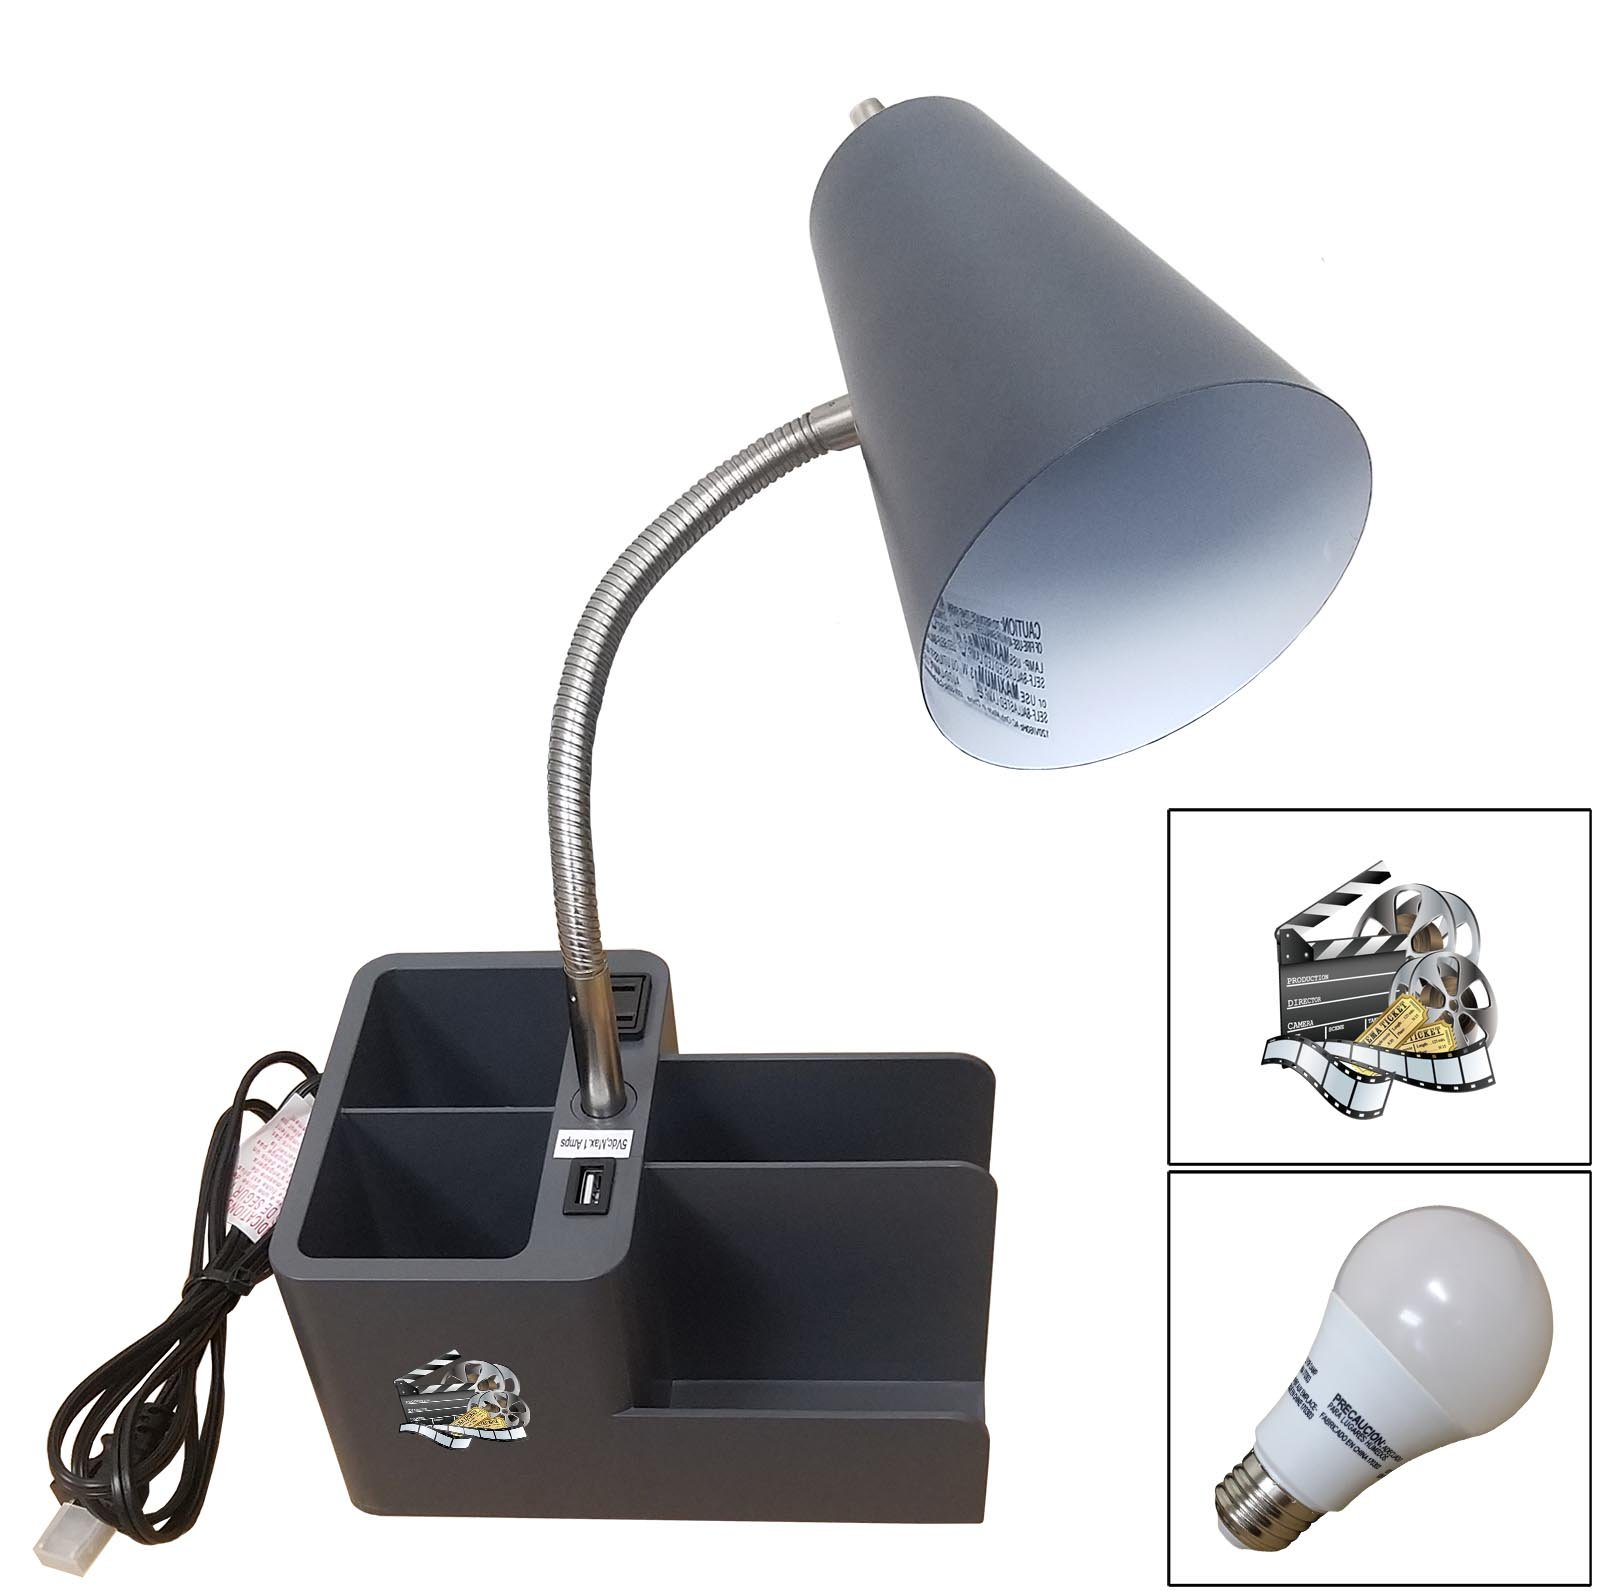 NEW! Grey Finish Organizer Table/Desk Lamp with a USB Port and Power Outlet that Features Your Choice of a Novelty Themed Logo and a Free LED Bulb! (Movie Reel)